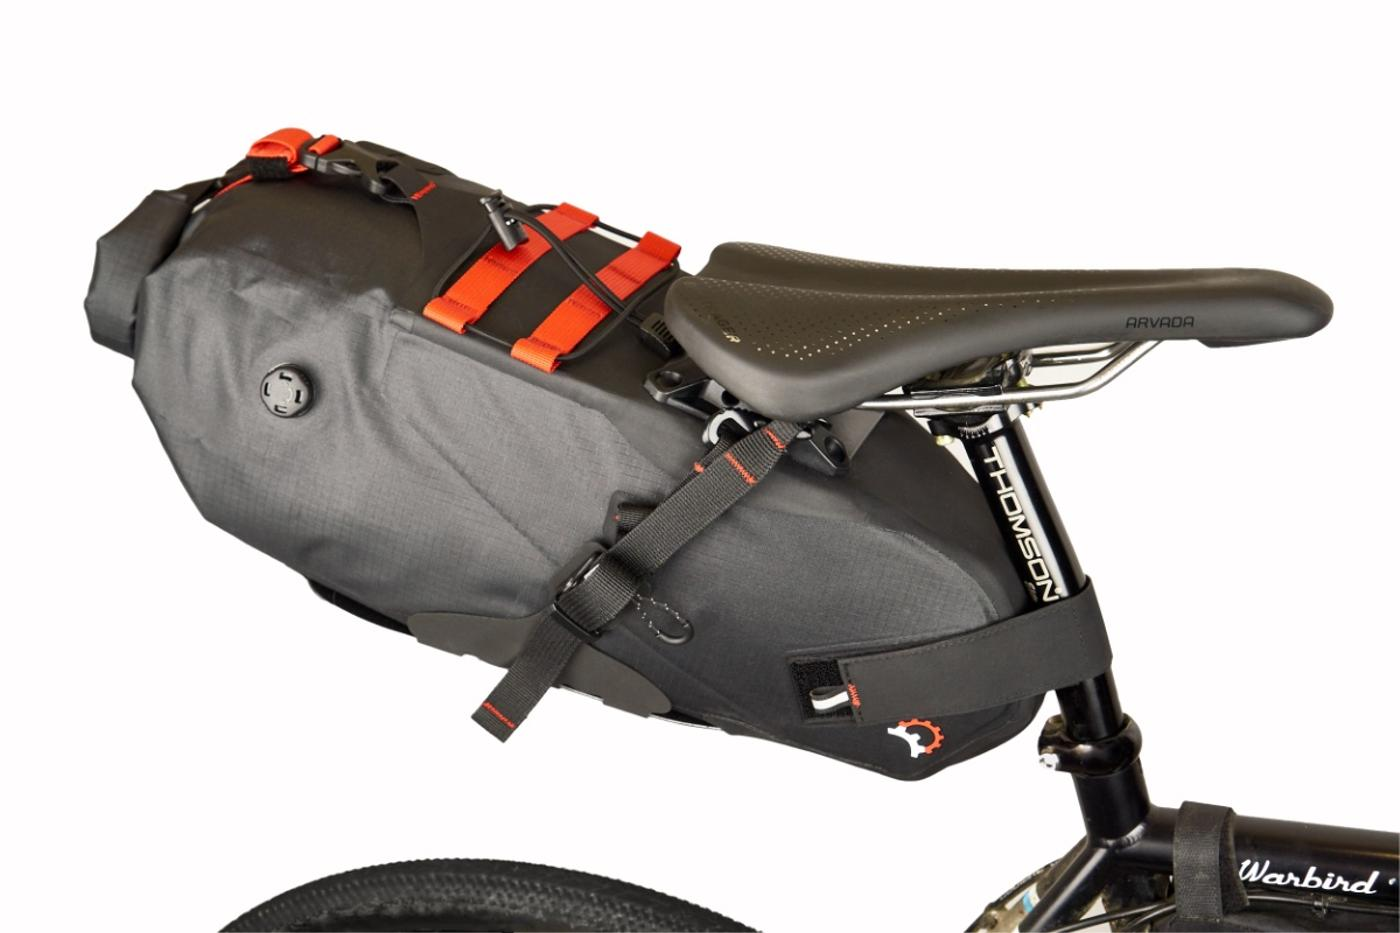 Revelate Designs: New Spinelock Saddle Pack Eliminates Sway